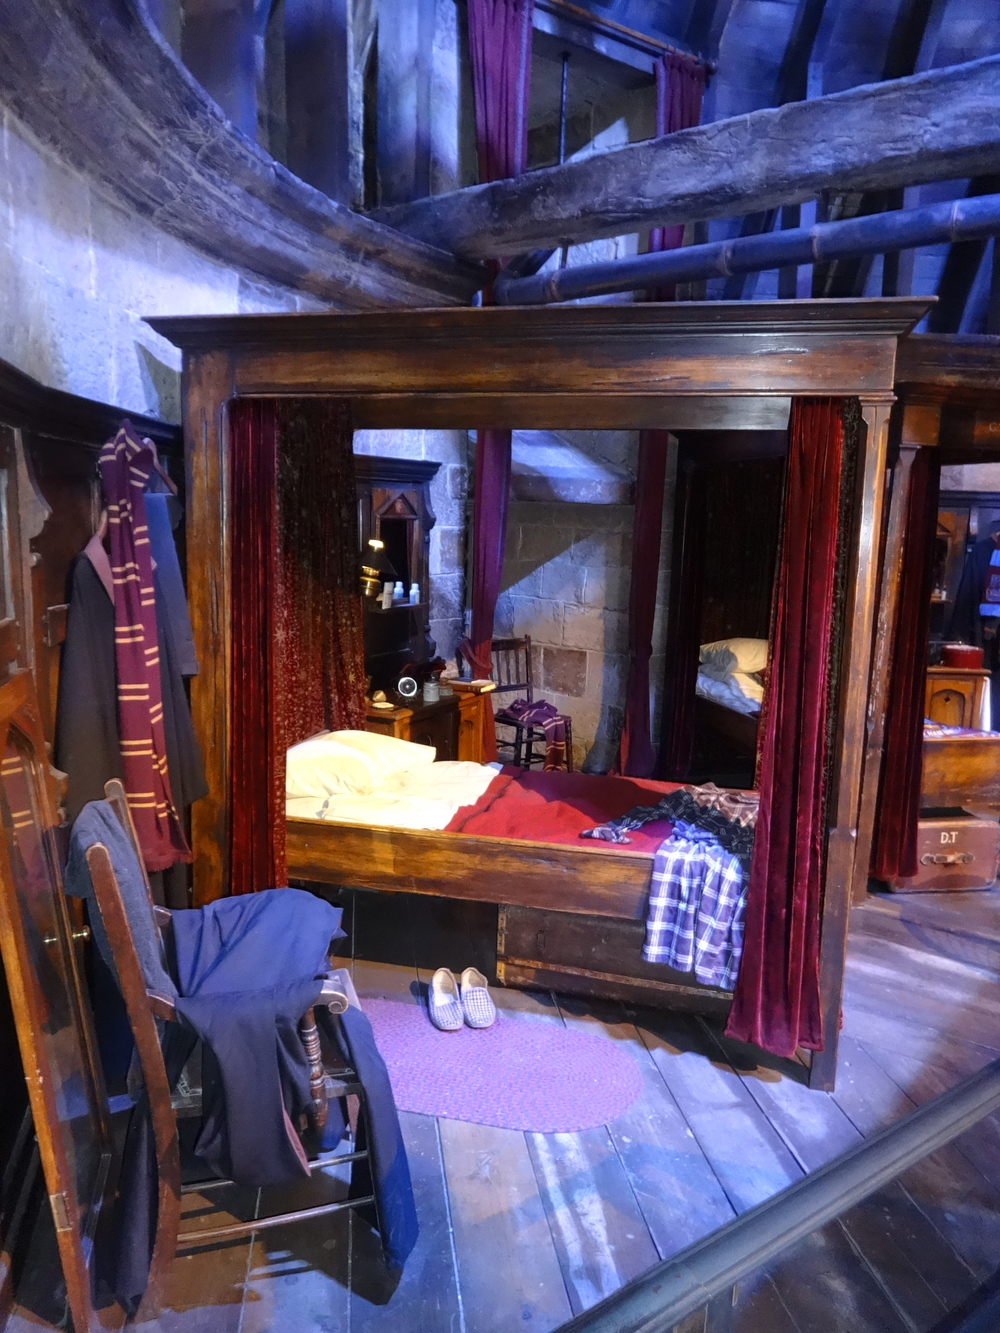 Harry's Bedroom in Hogwarts